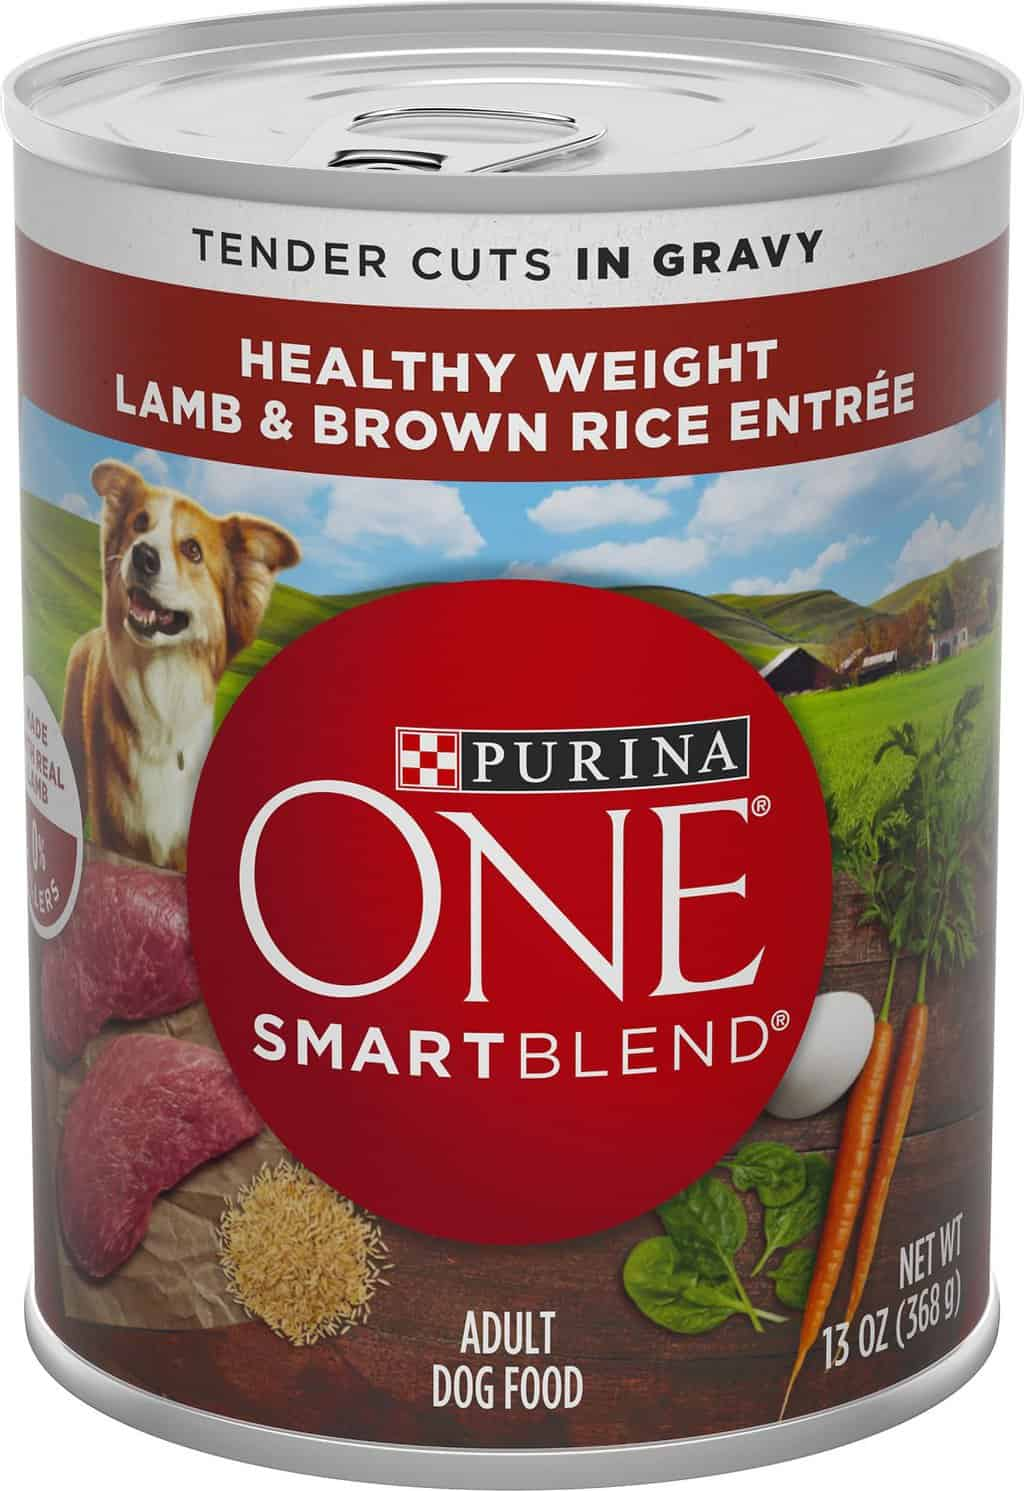 Purina One Dog Food: 2021 Reviews, Recalls & Coupons 15